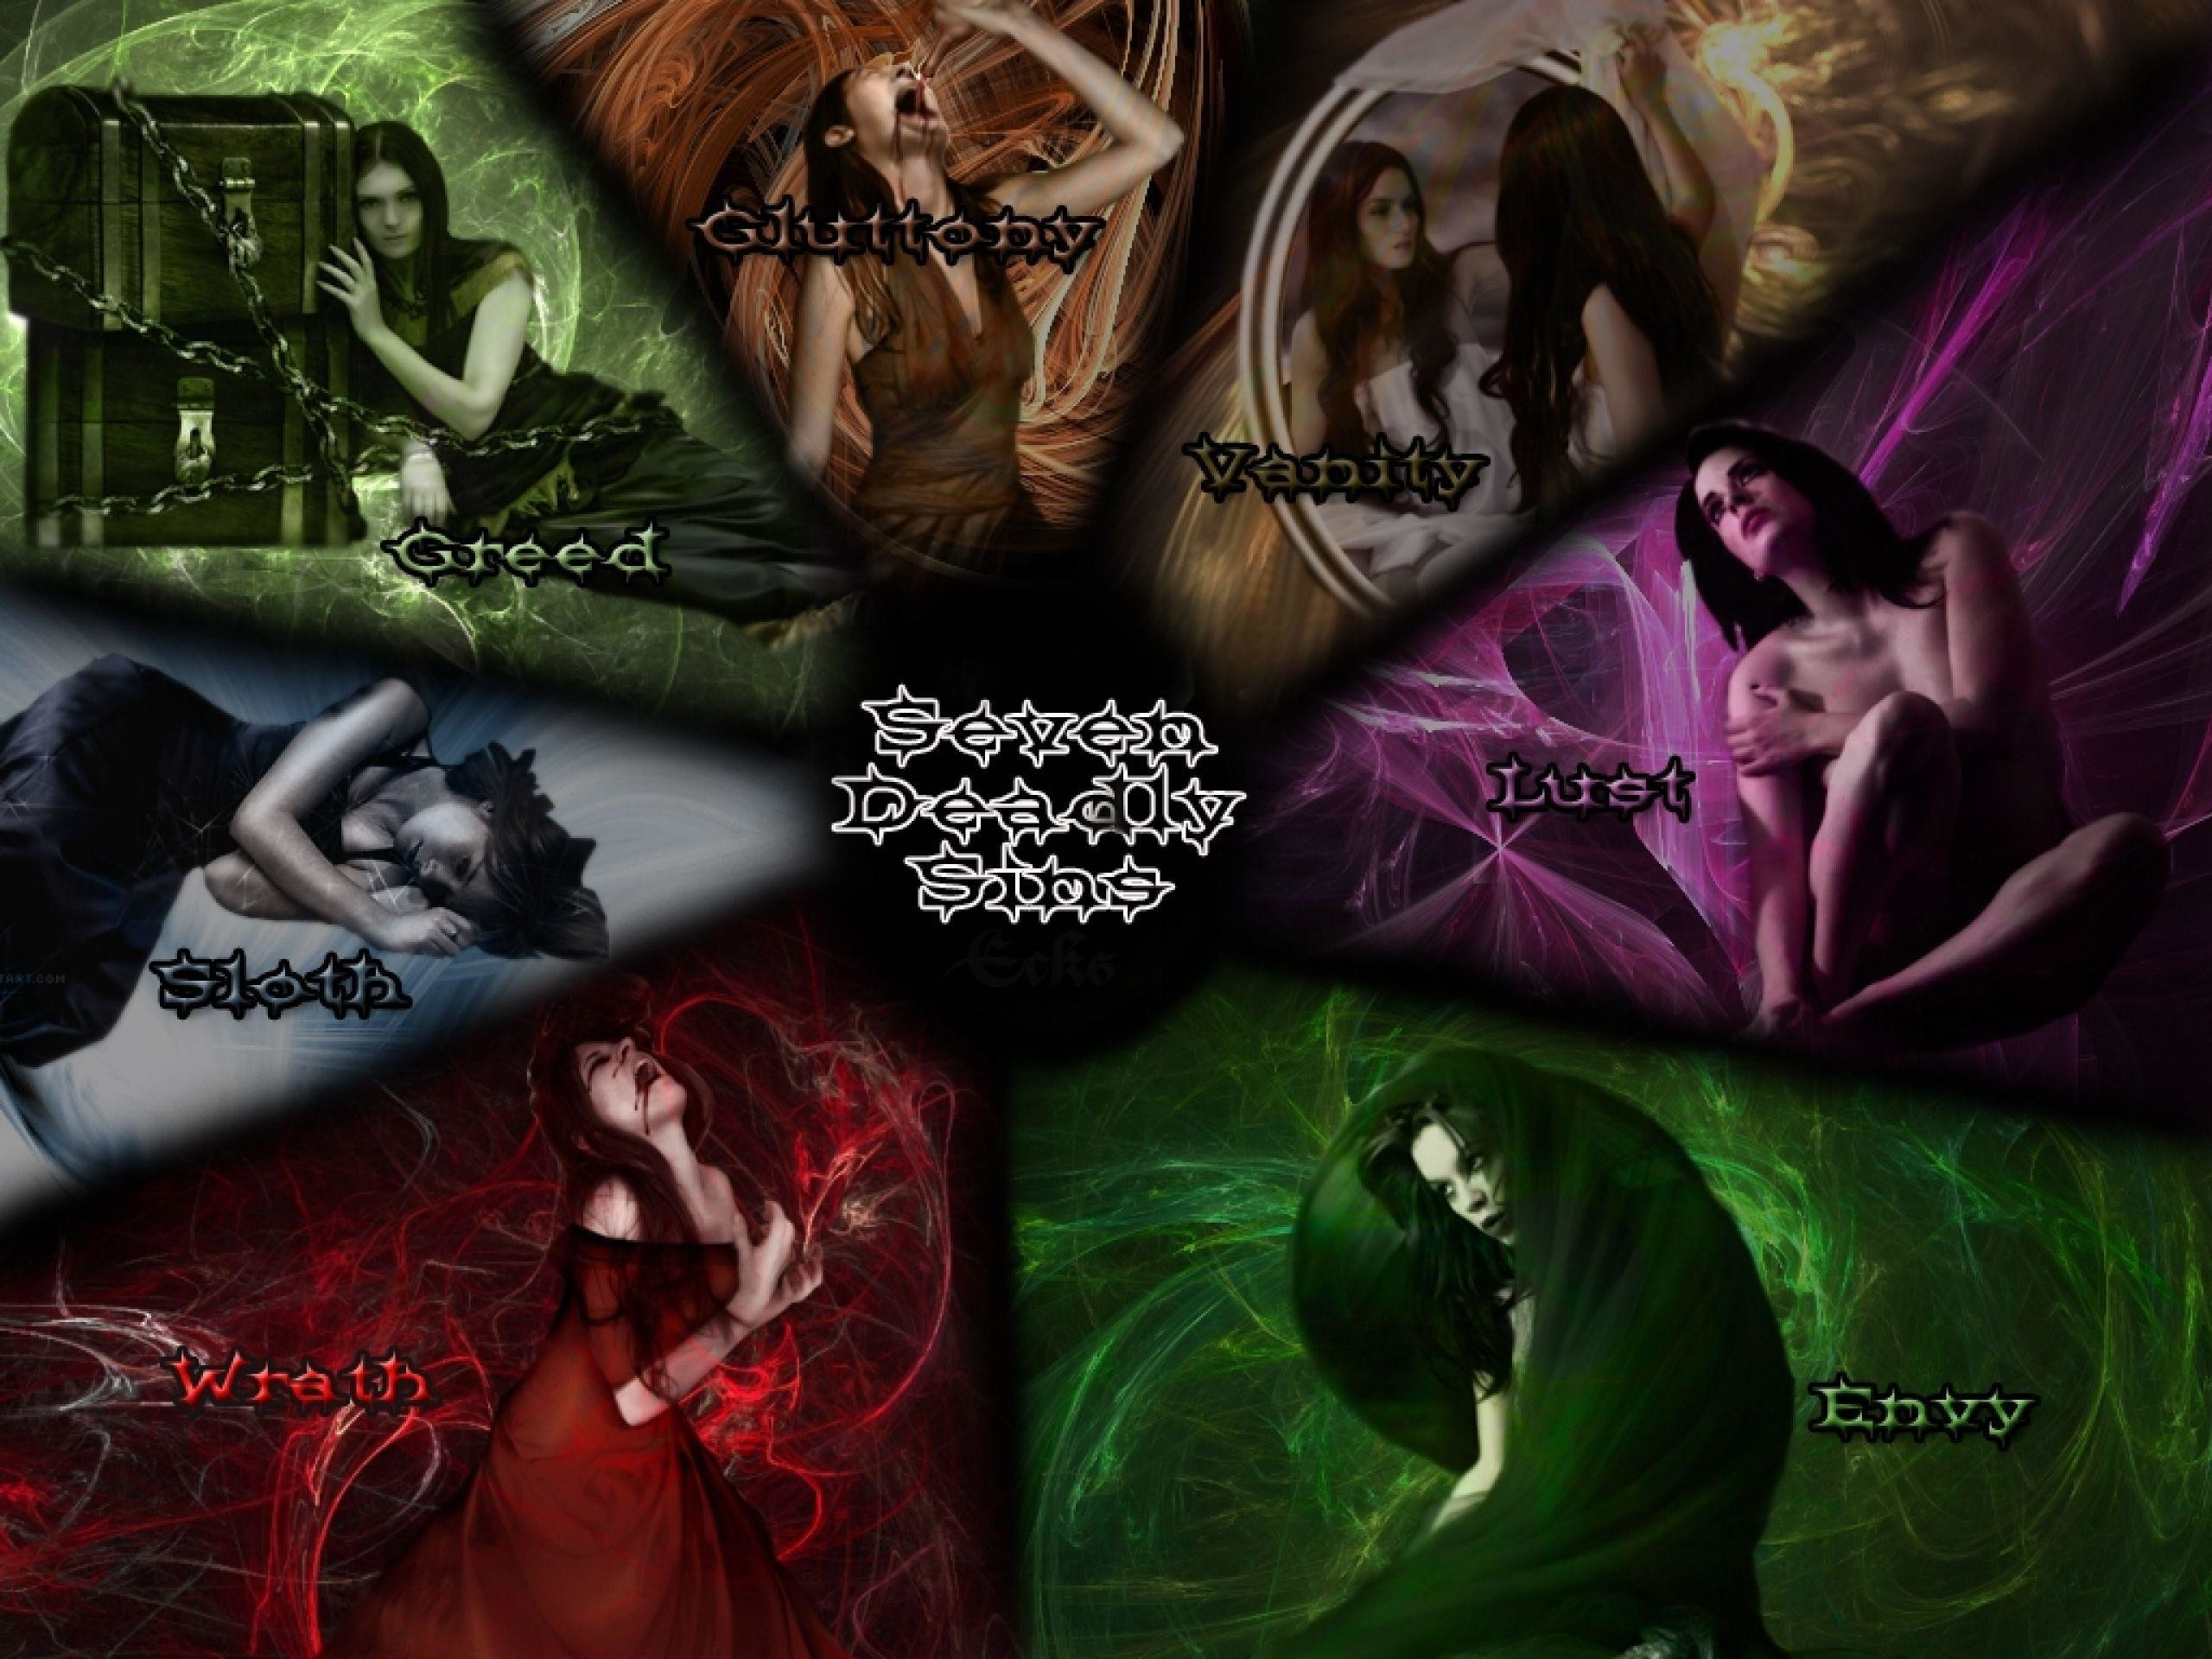 2560x1920 7 Deadly Sins Wallpapers, Amazing 39 Wallpapers of 7 Deadly Sins .